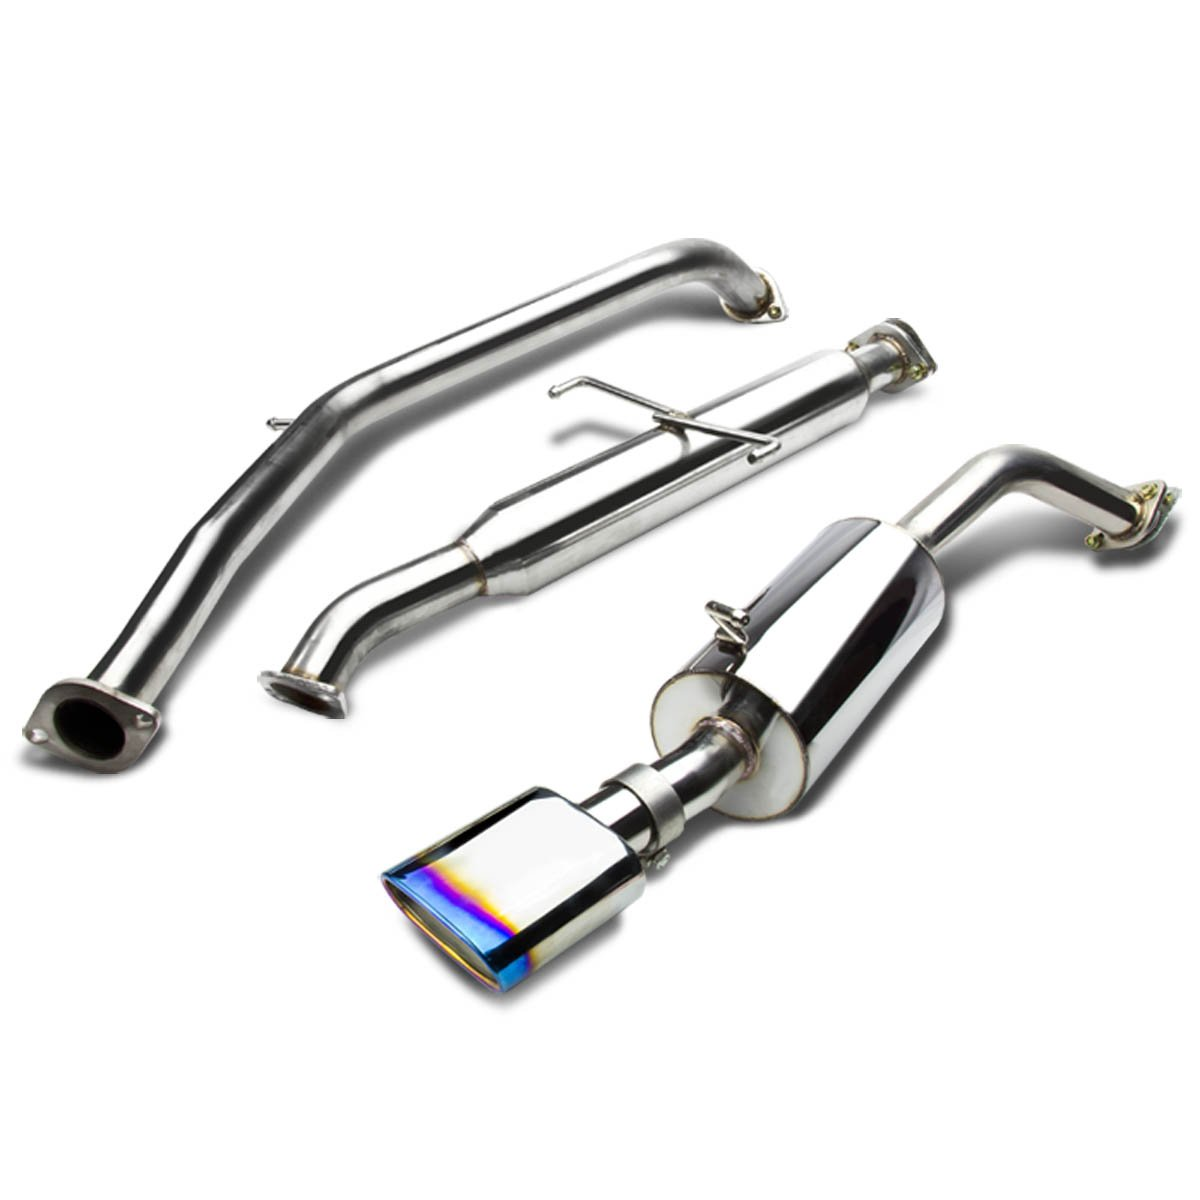 For 08-15 Scion xB Catback Exhaust System 5.5' Oval Tip muffler - t2B Auto Dynasty